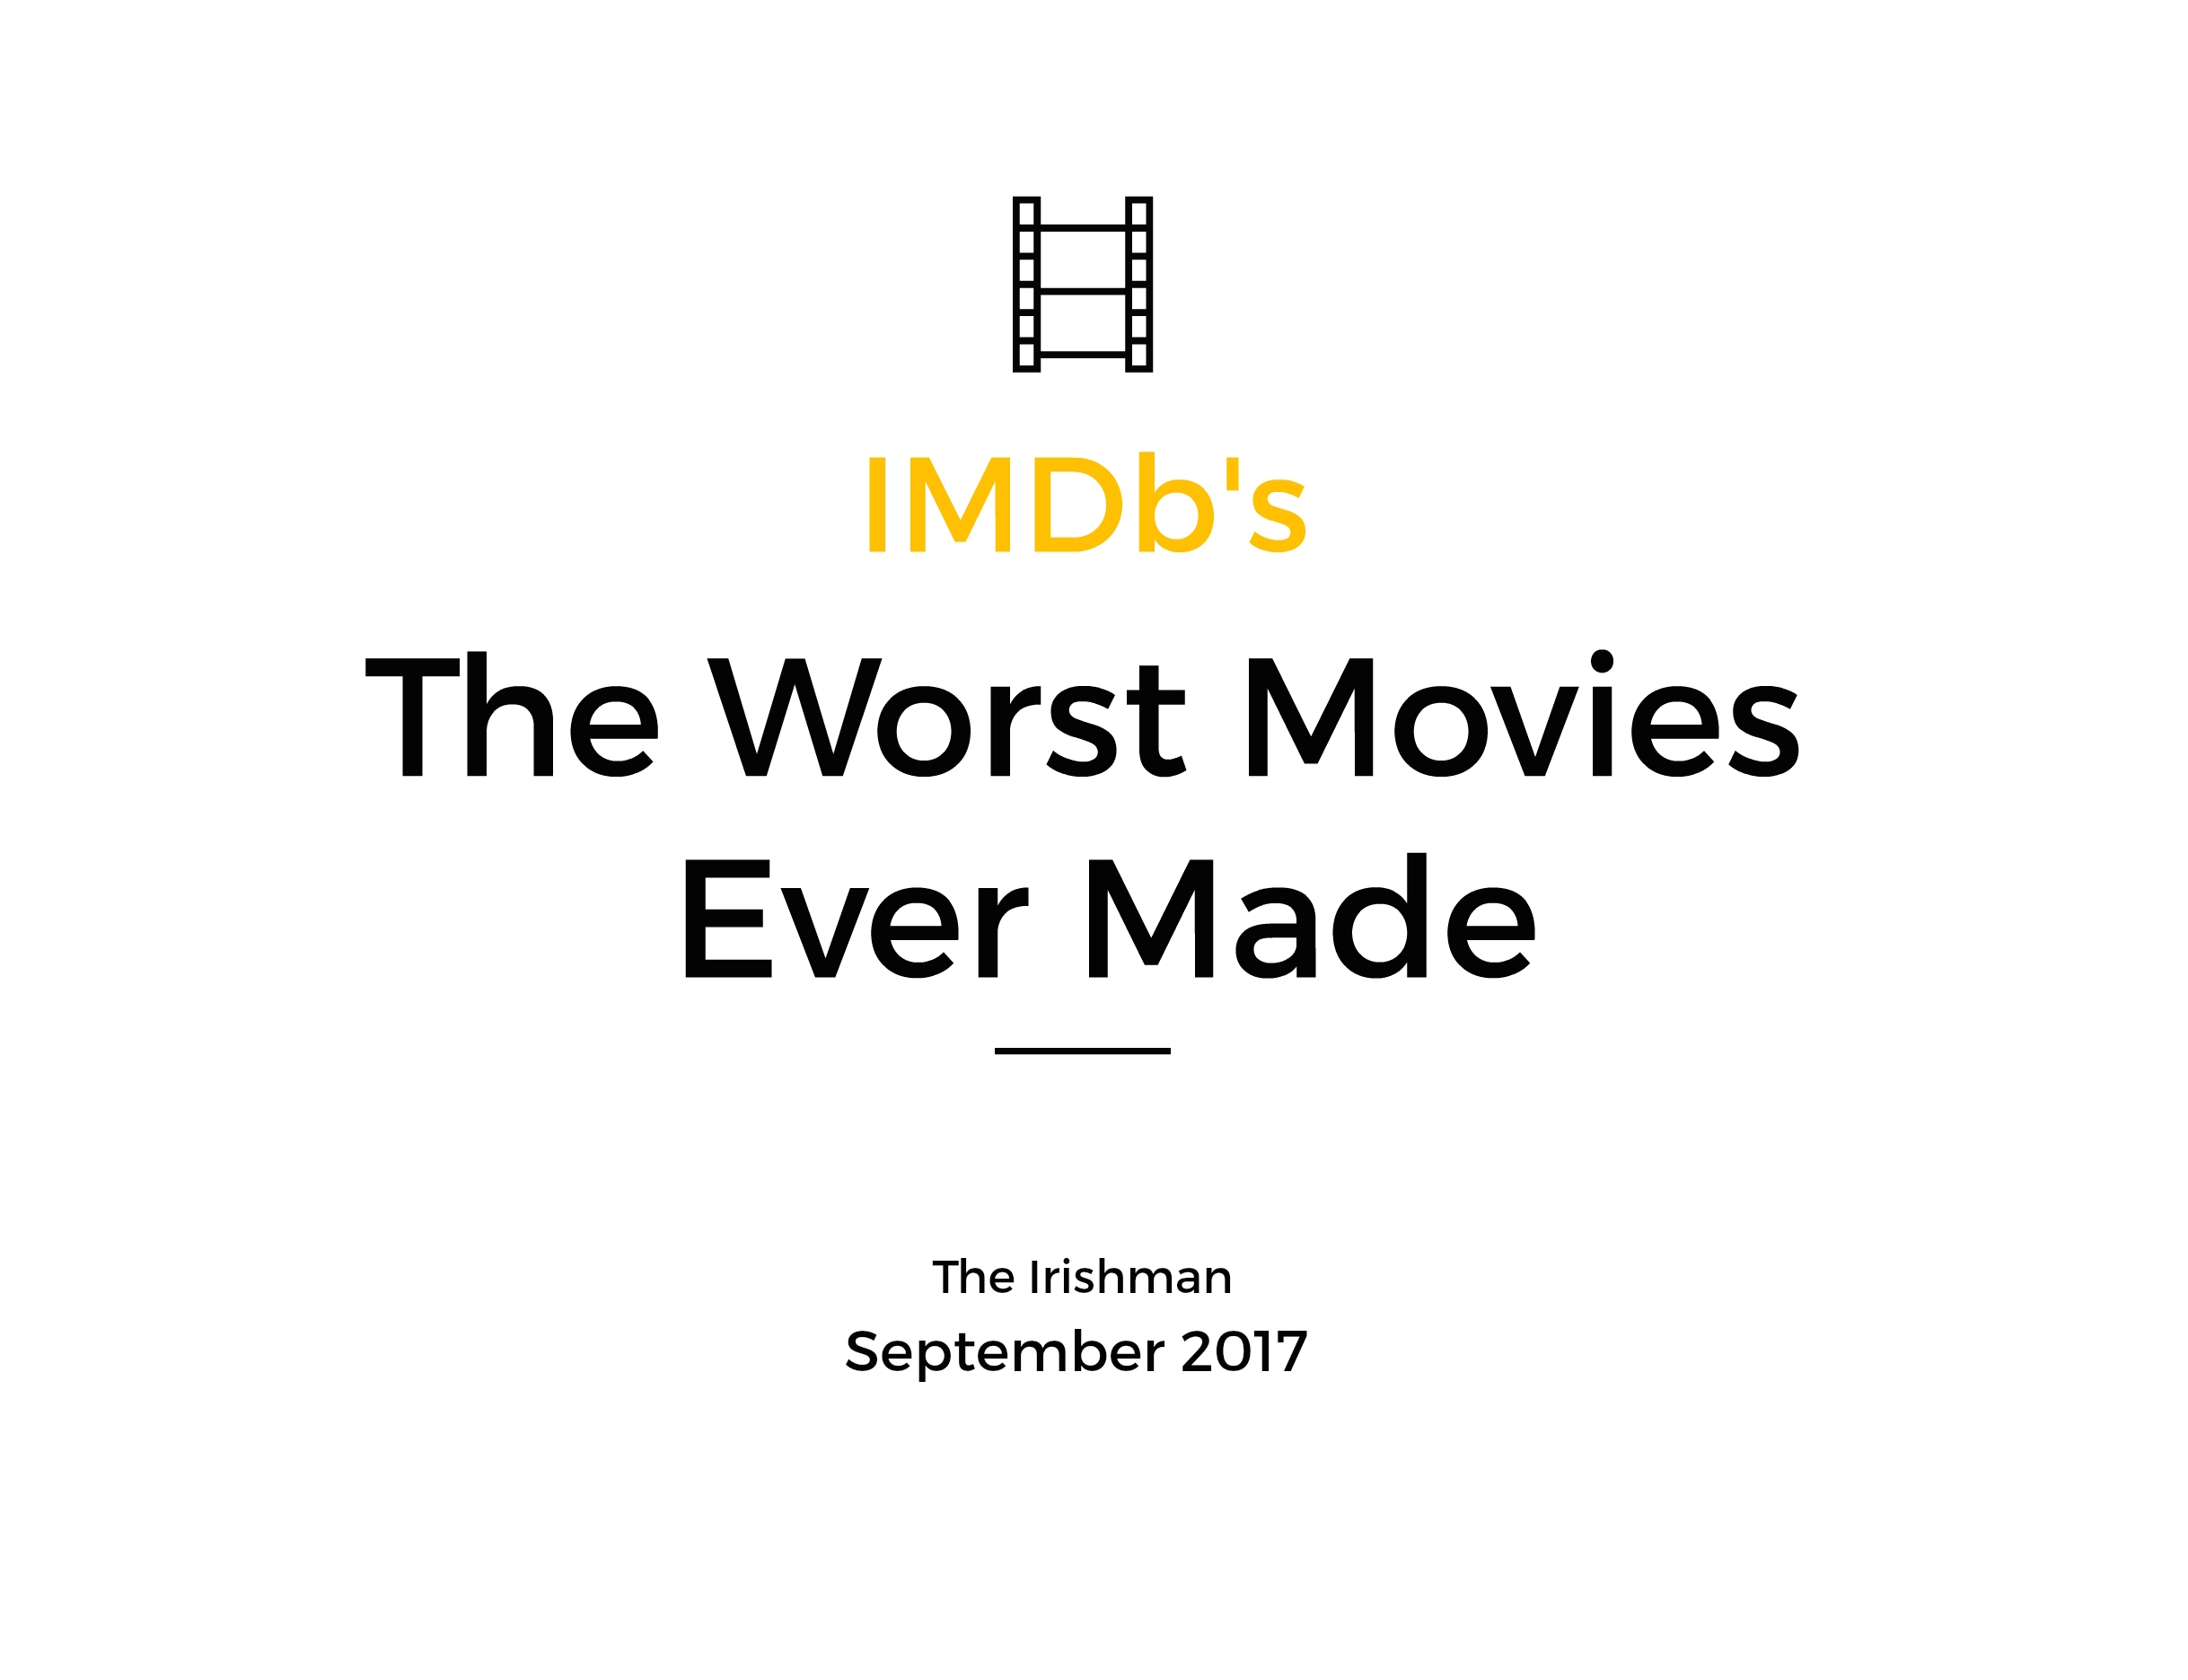 The worst movies ever made